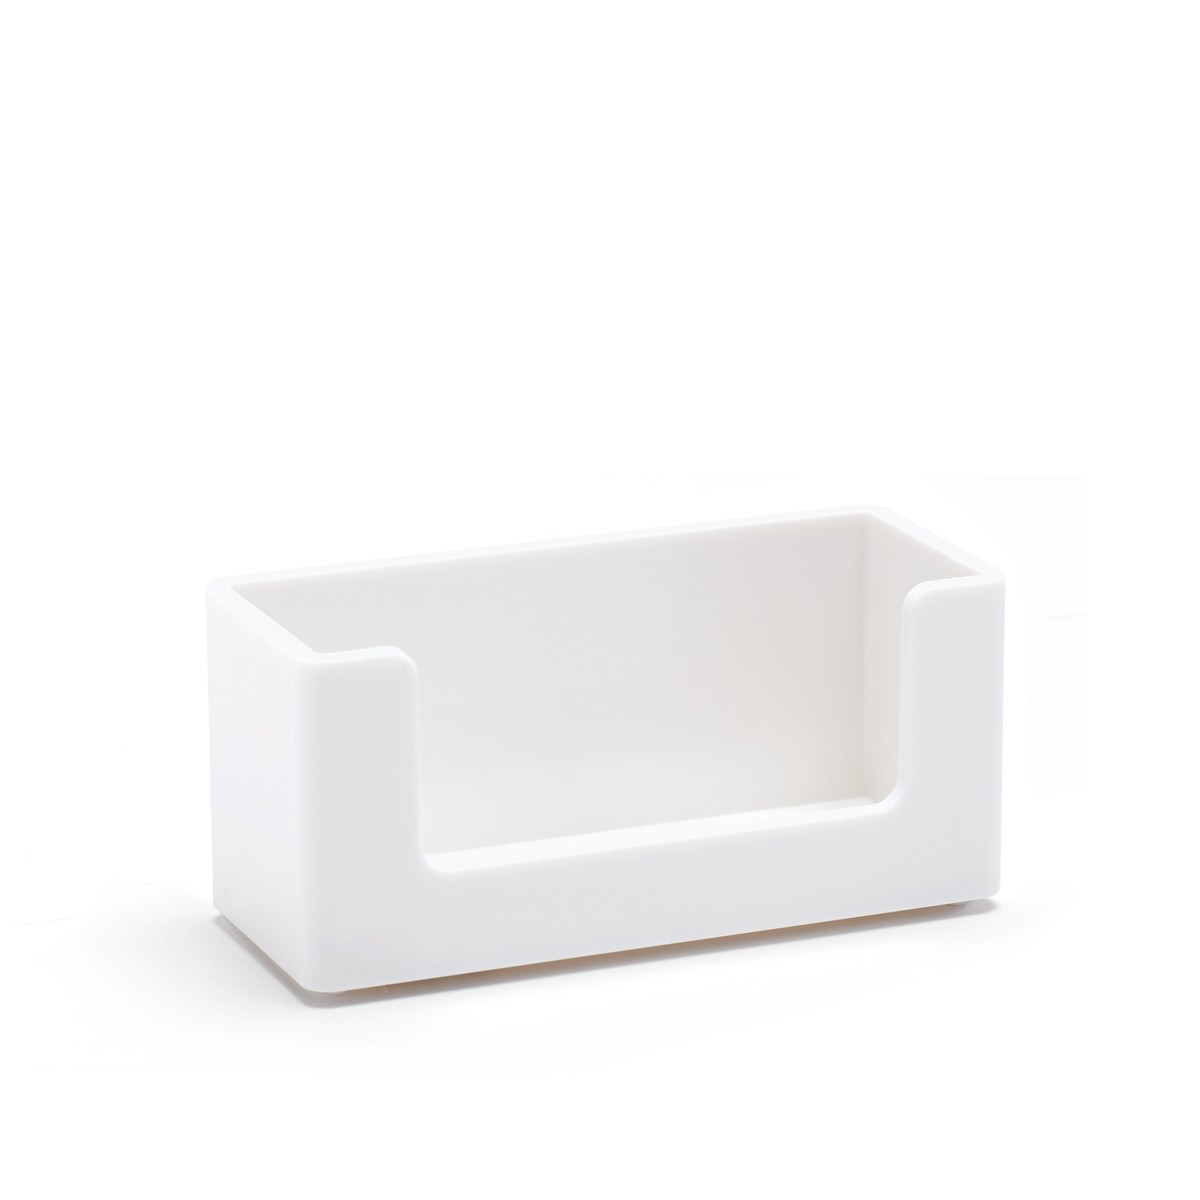 white business card holder desk accessories & organization  poppin